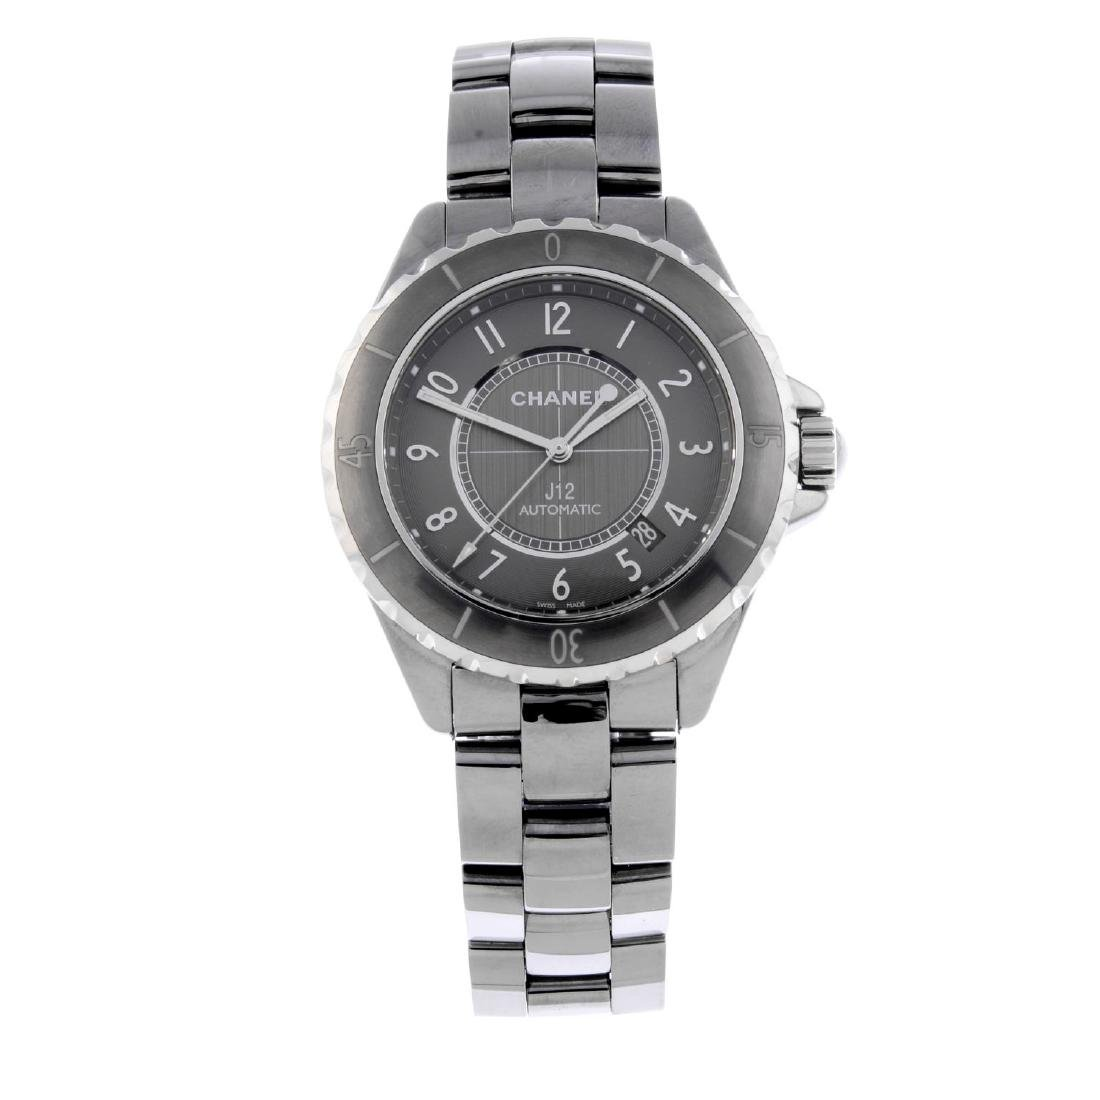 CHANEL - a J12 bracelet watch. Ceramic case with